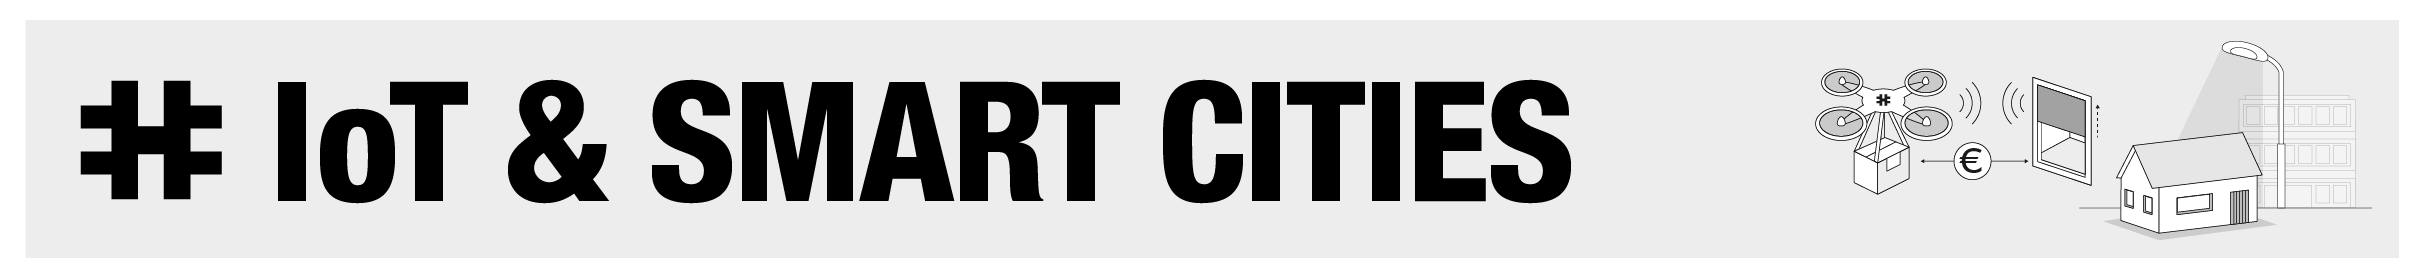 RIDDLE&CODE_IoT_and_Smart_Cities.png